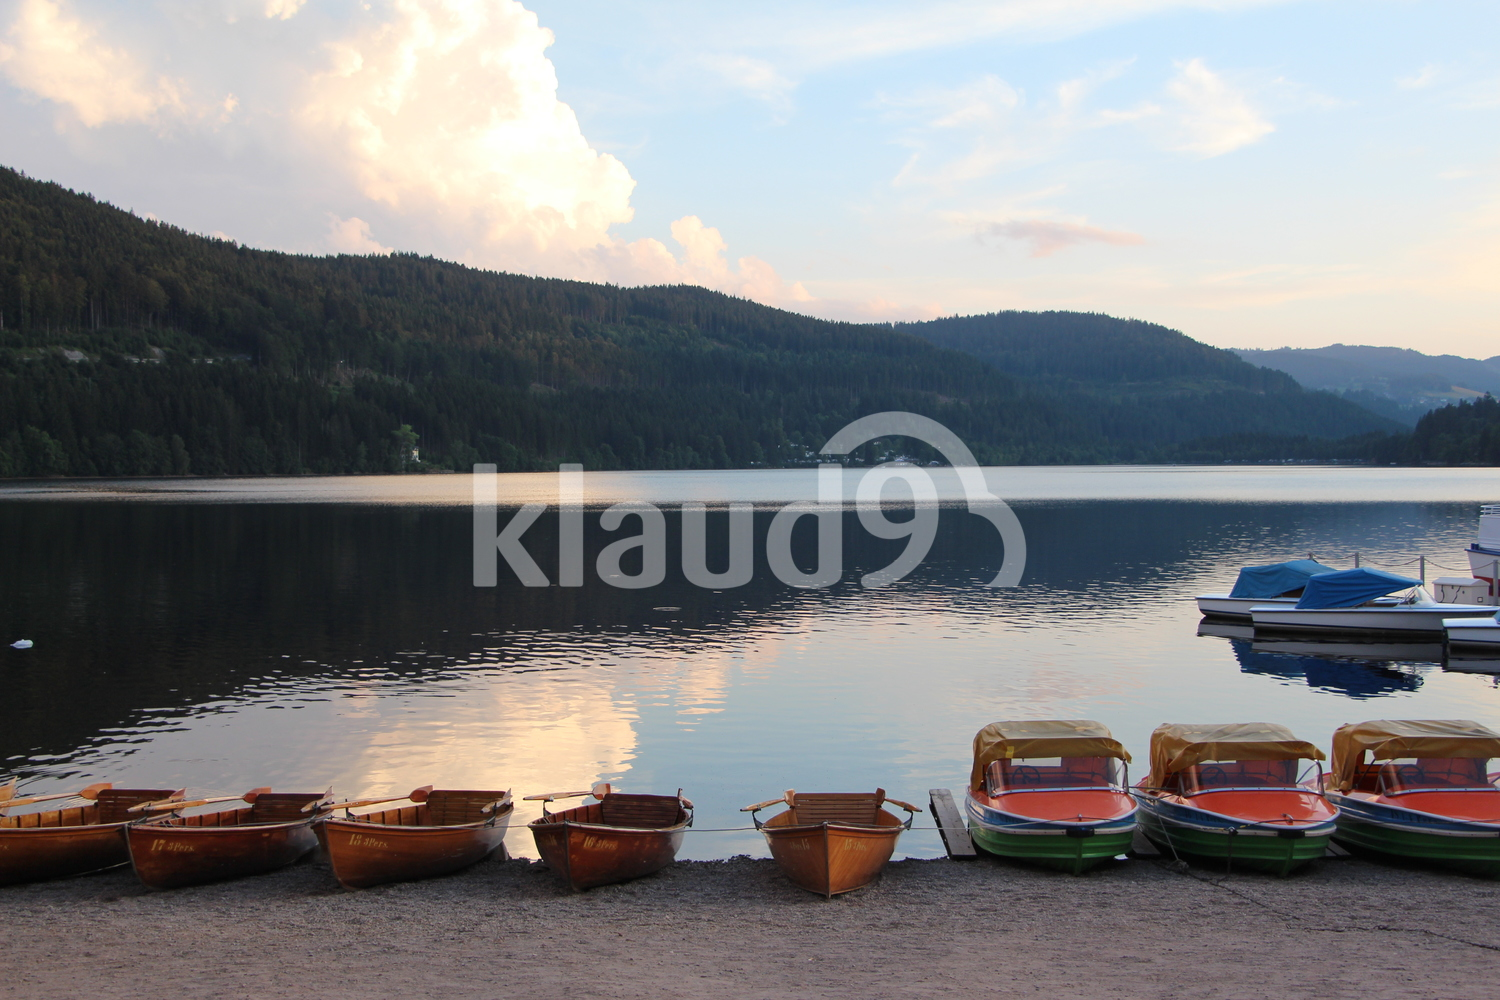 Parking boats in lake Titisee, Germany